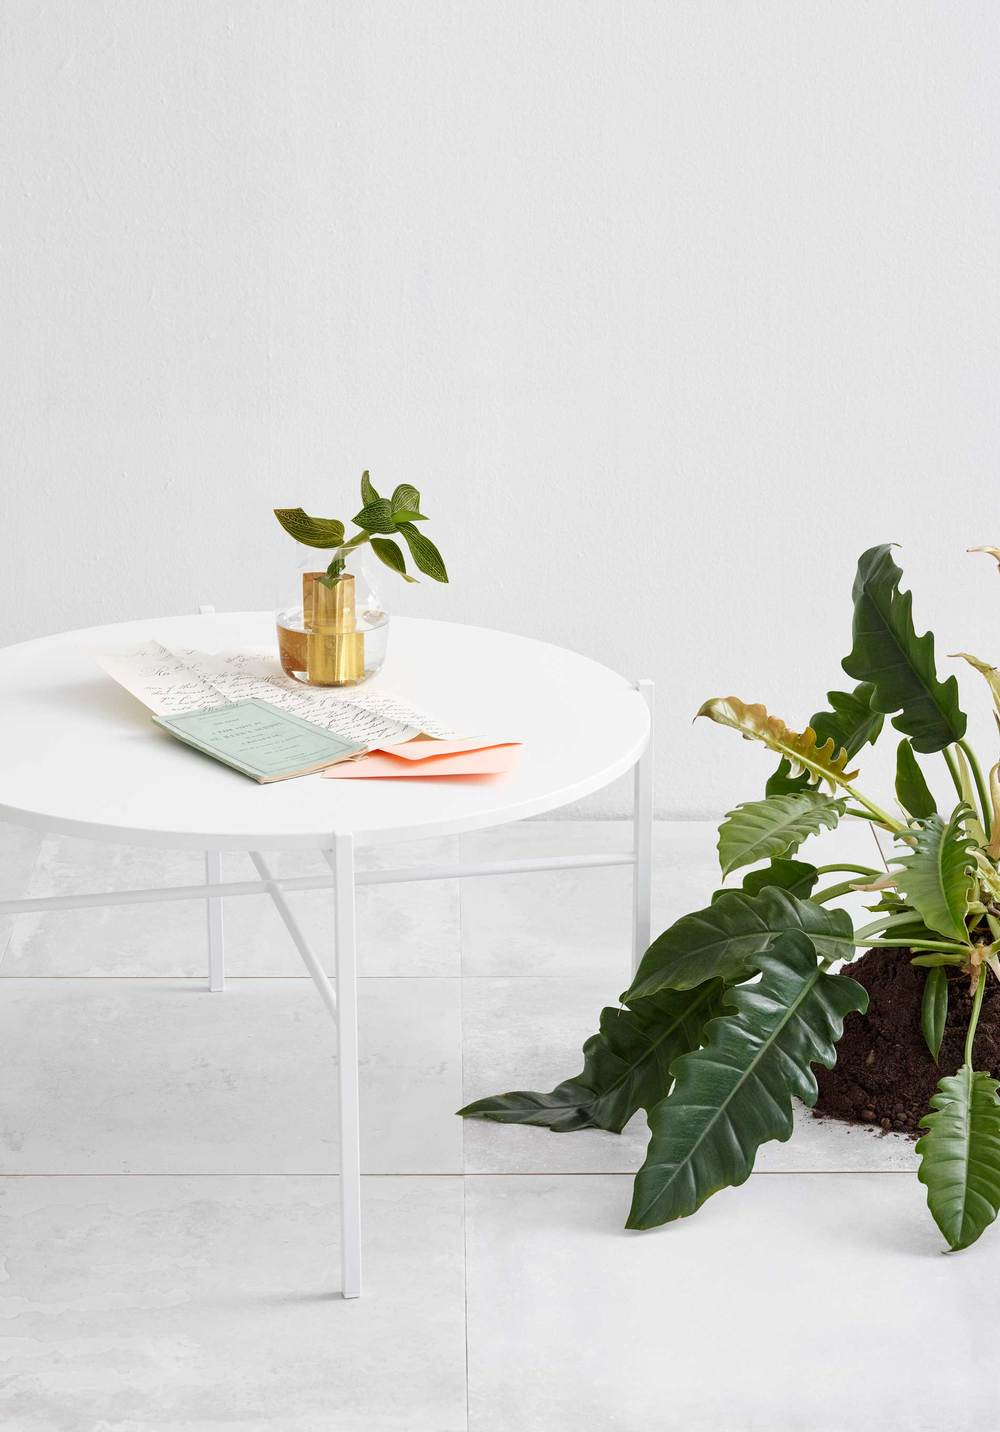 Round-table designed for the Finnish furniture company Hakola together with lovely partner-in-crime Ines Wartiainen